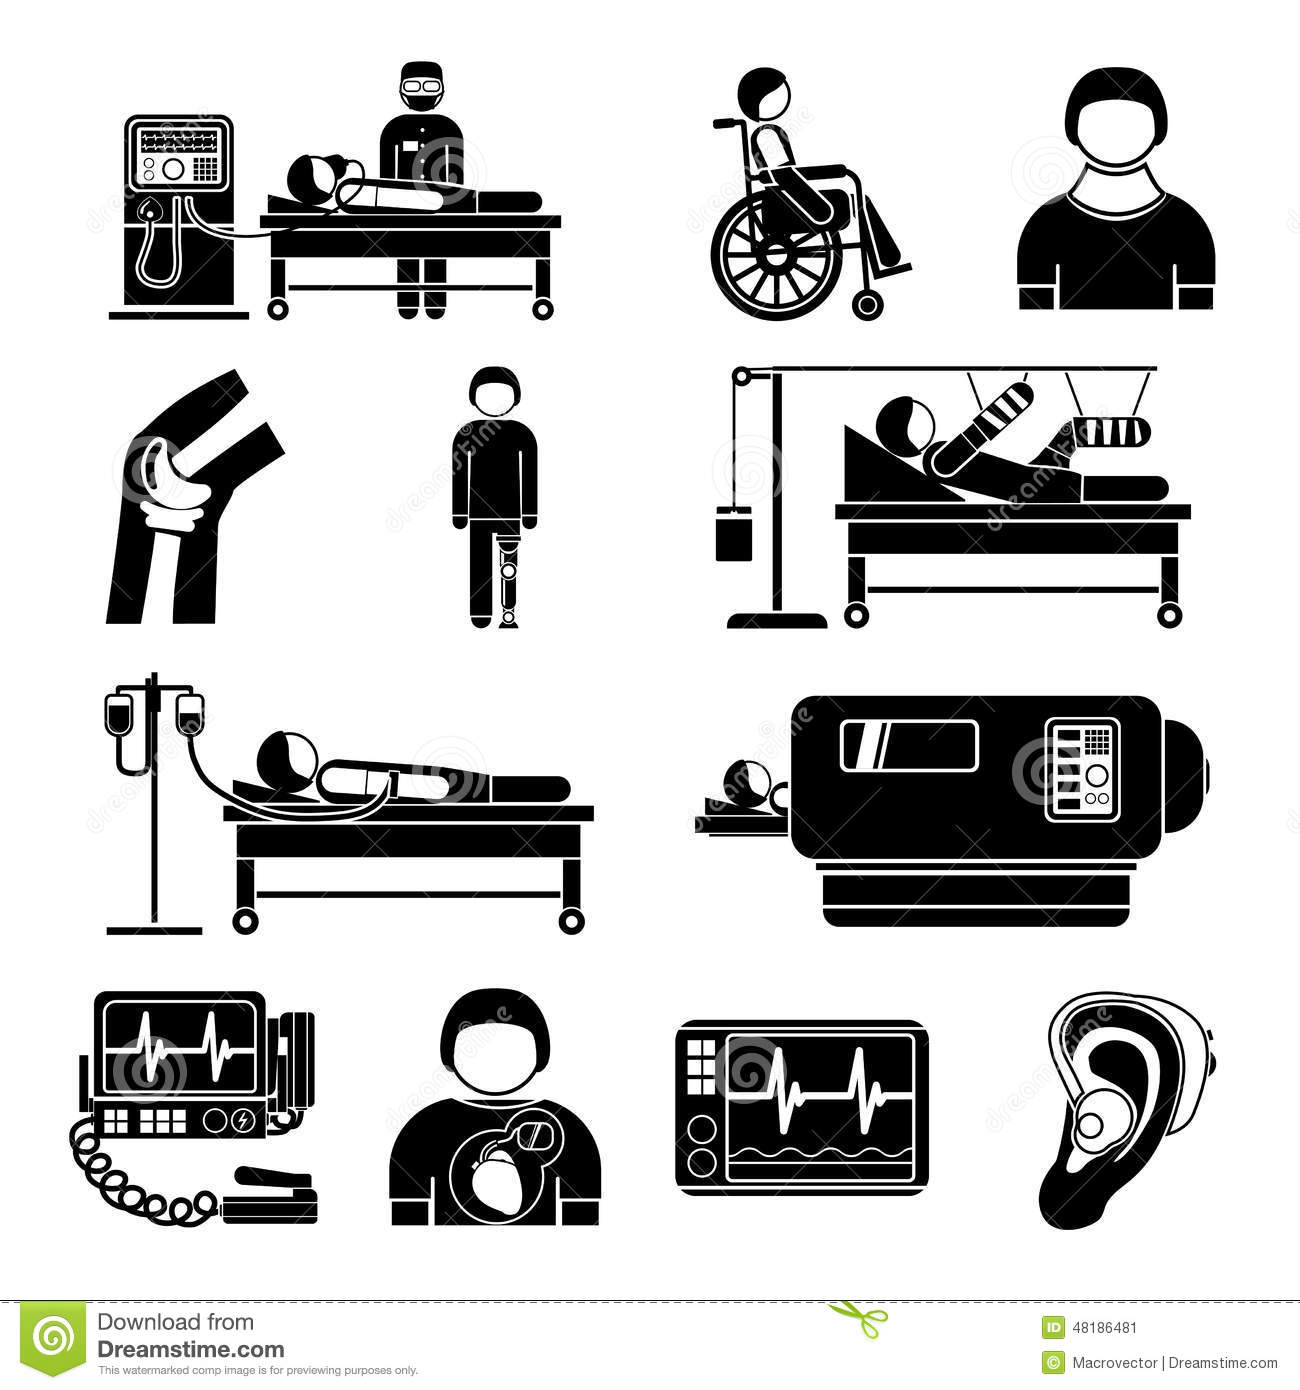 Life Support Equipments Cliparts Icons Stock Vector.